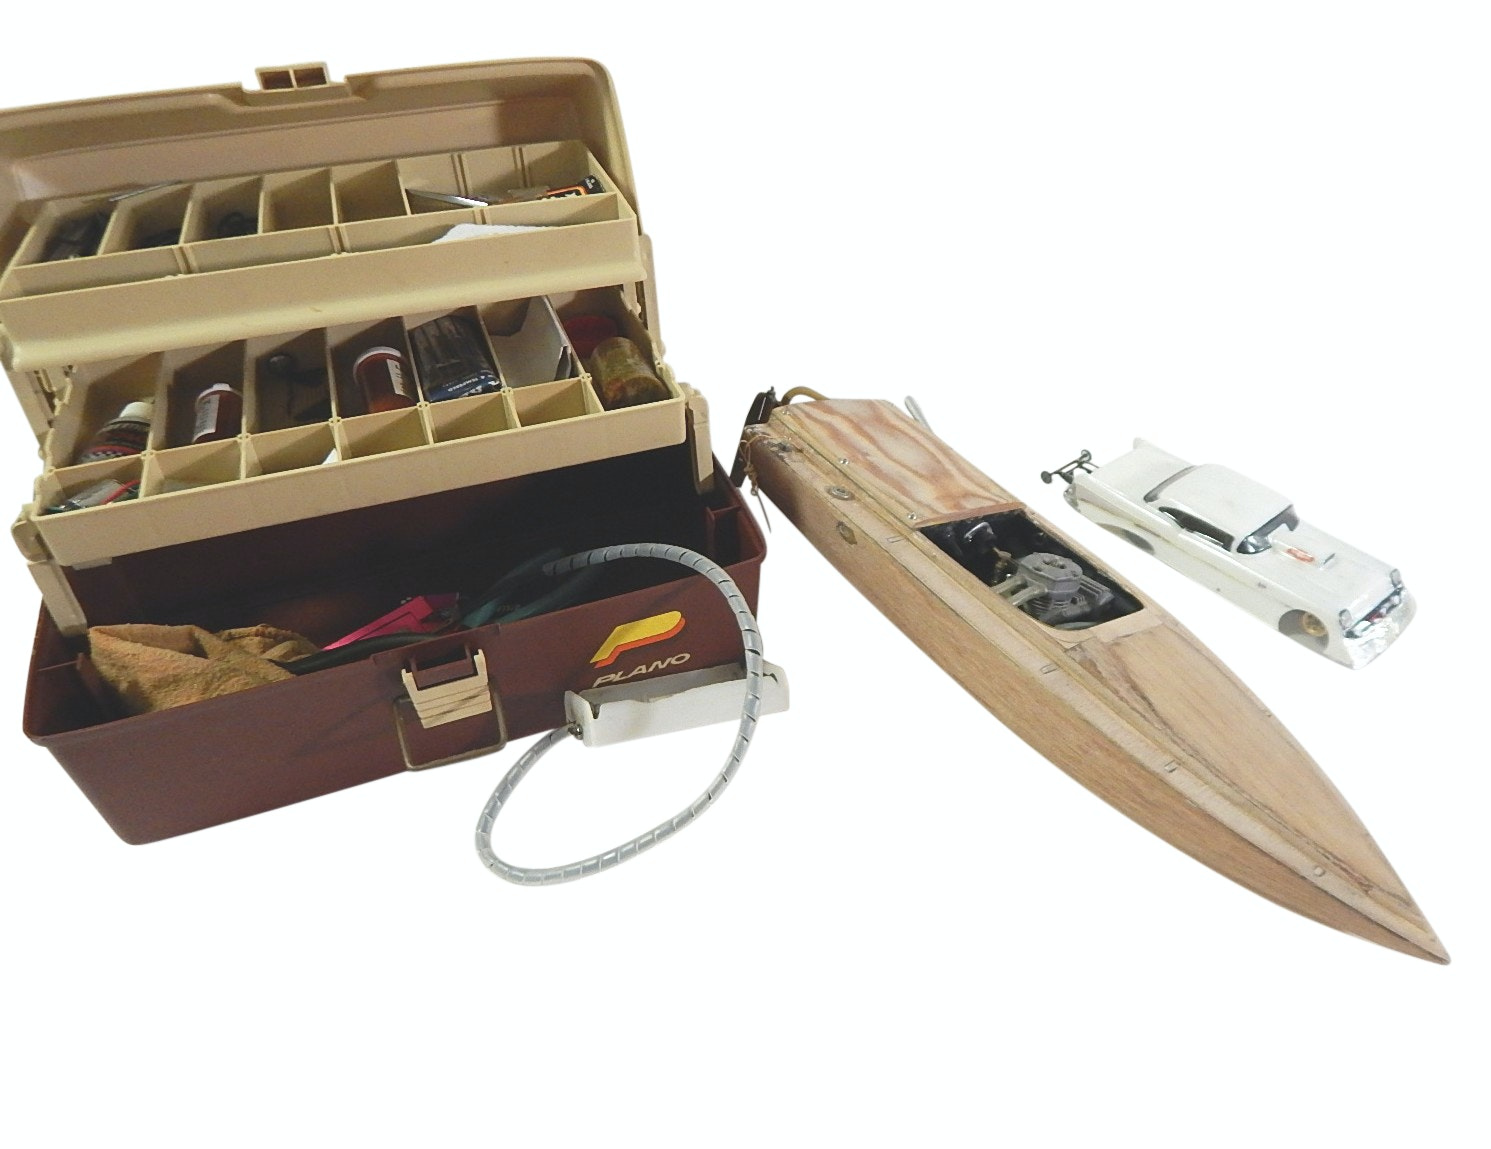 Vintage Hand Made Gas Powered Boat and Car Model, Soldering Accessories